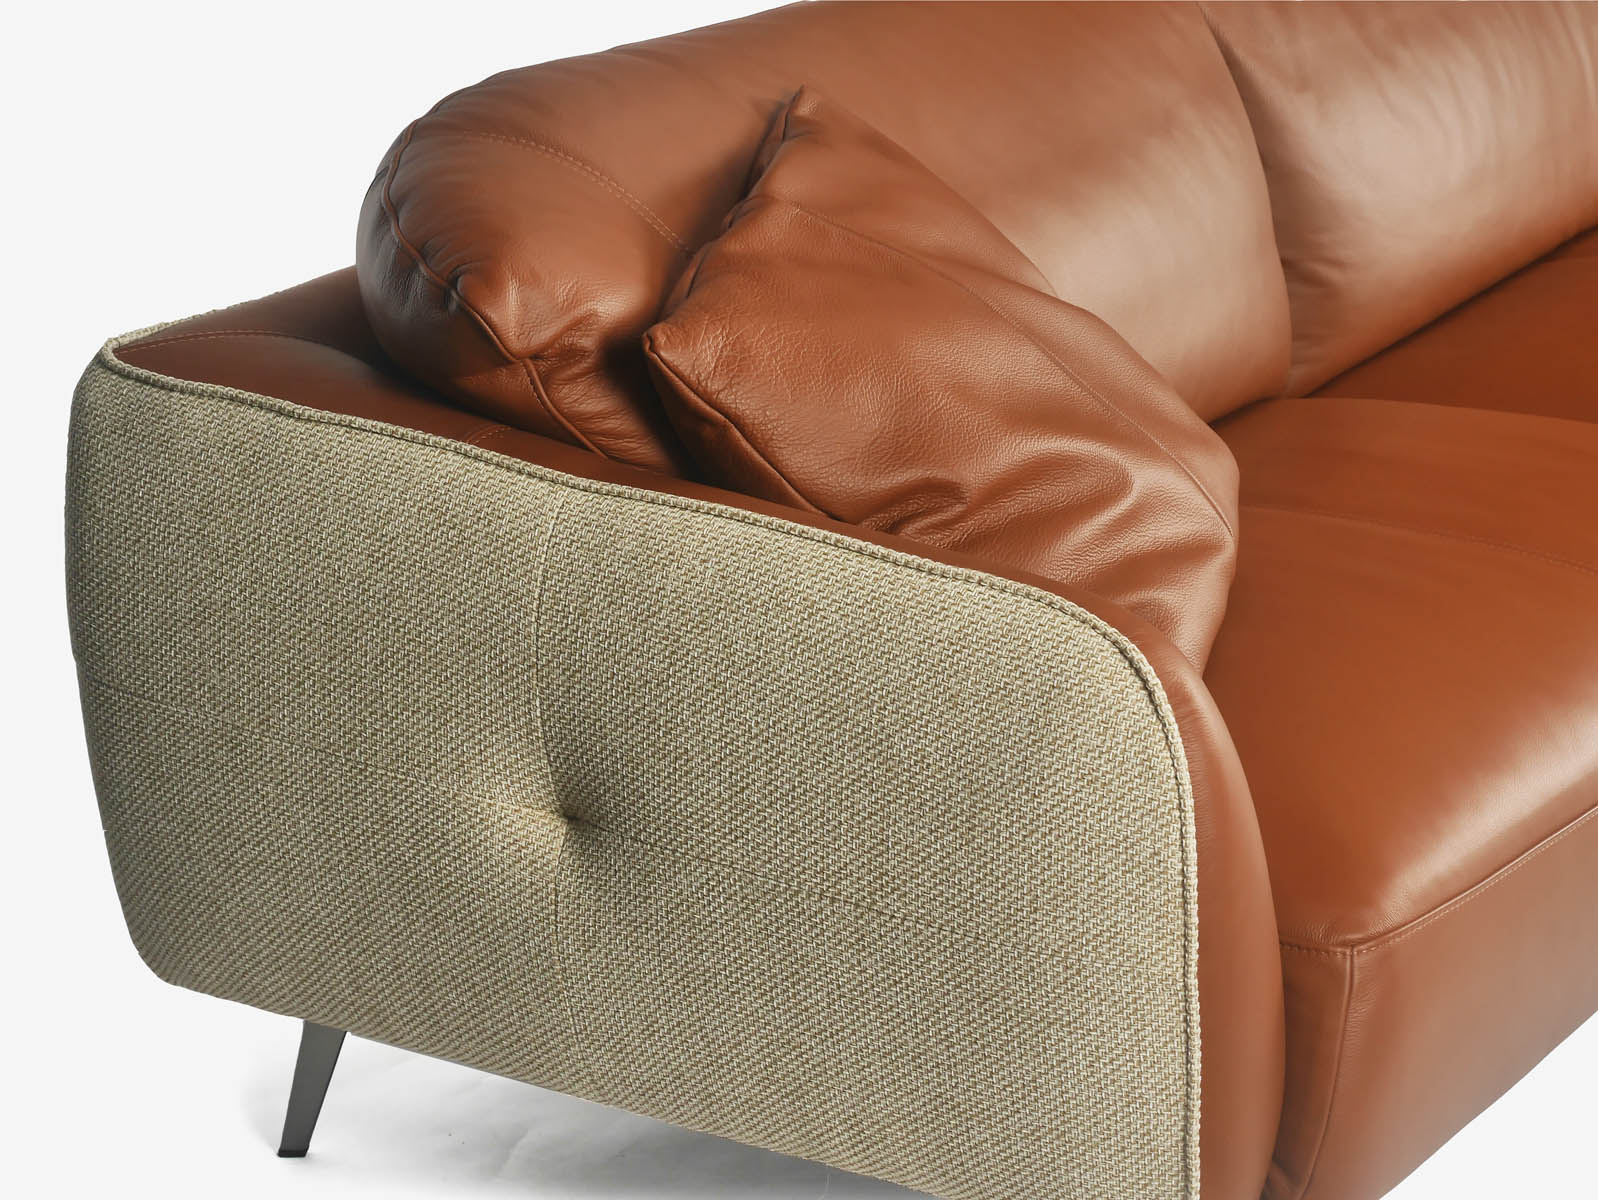 Leather and fabric sofa - Travis marries the style of both to bring you a budget friendly sofa in exquisite style, for your home furnishings.